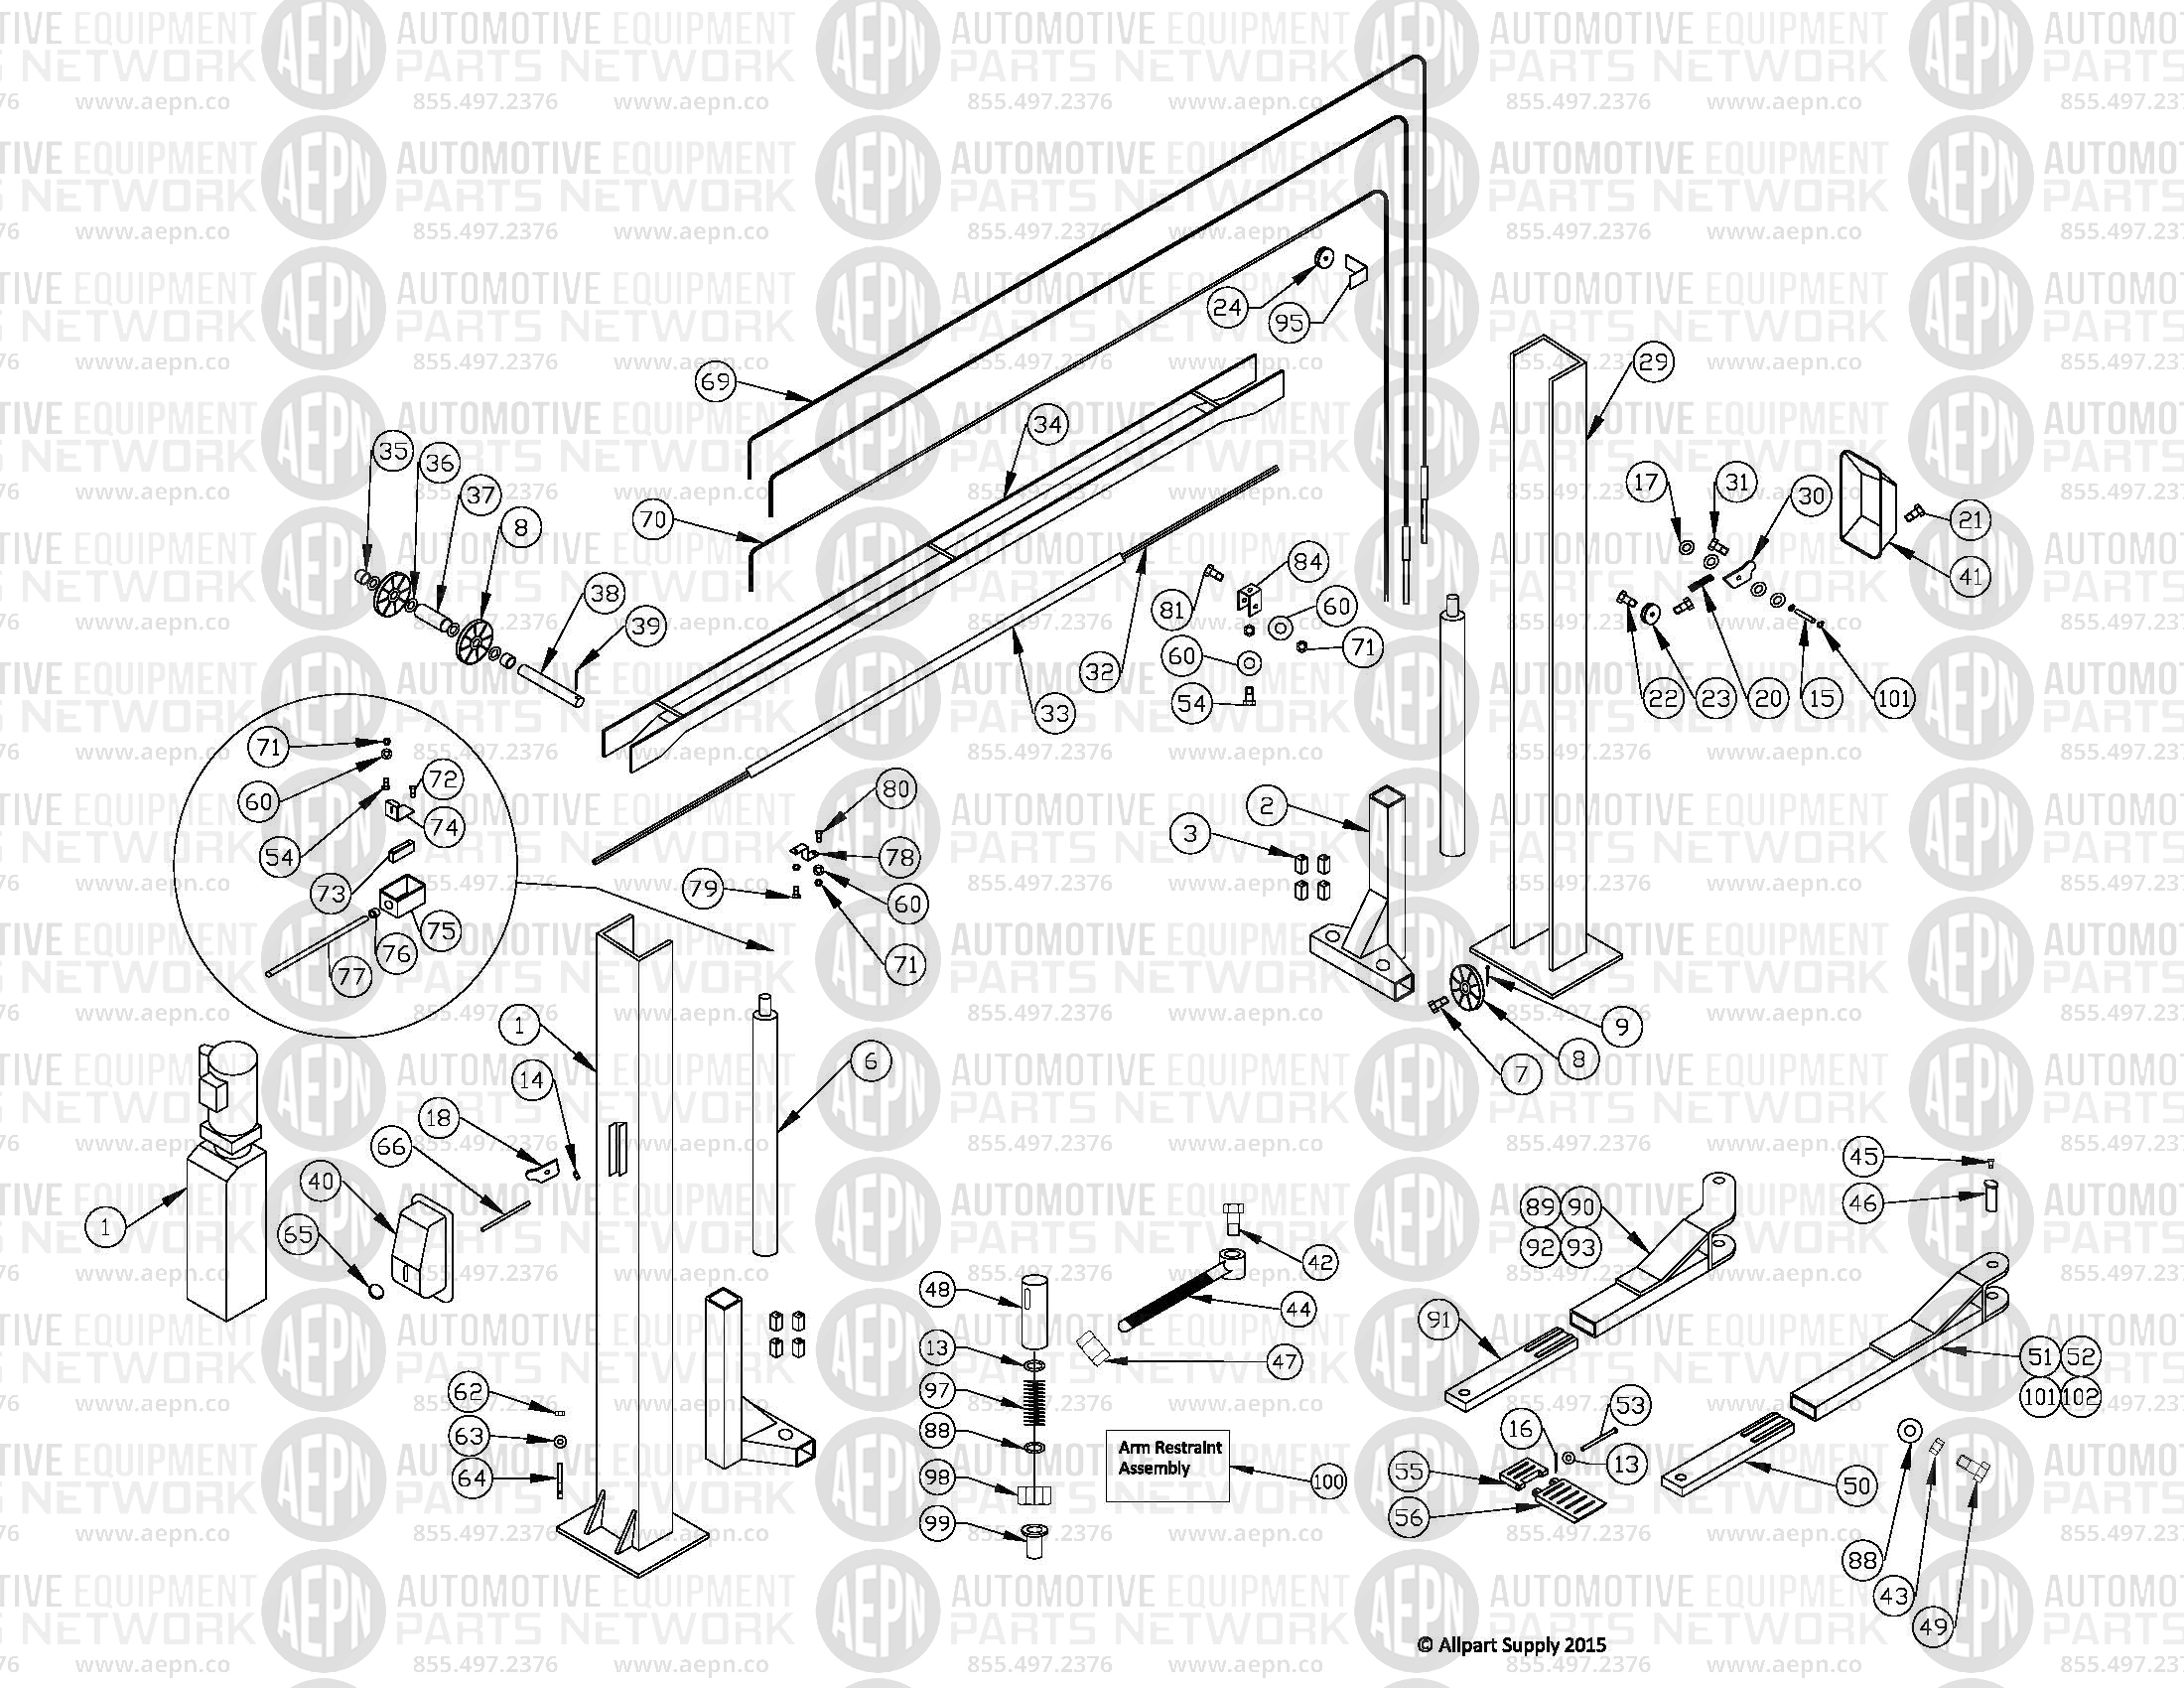 Schlage Wiring Diagrams - Wiring Diagram Liry on